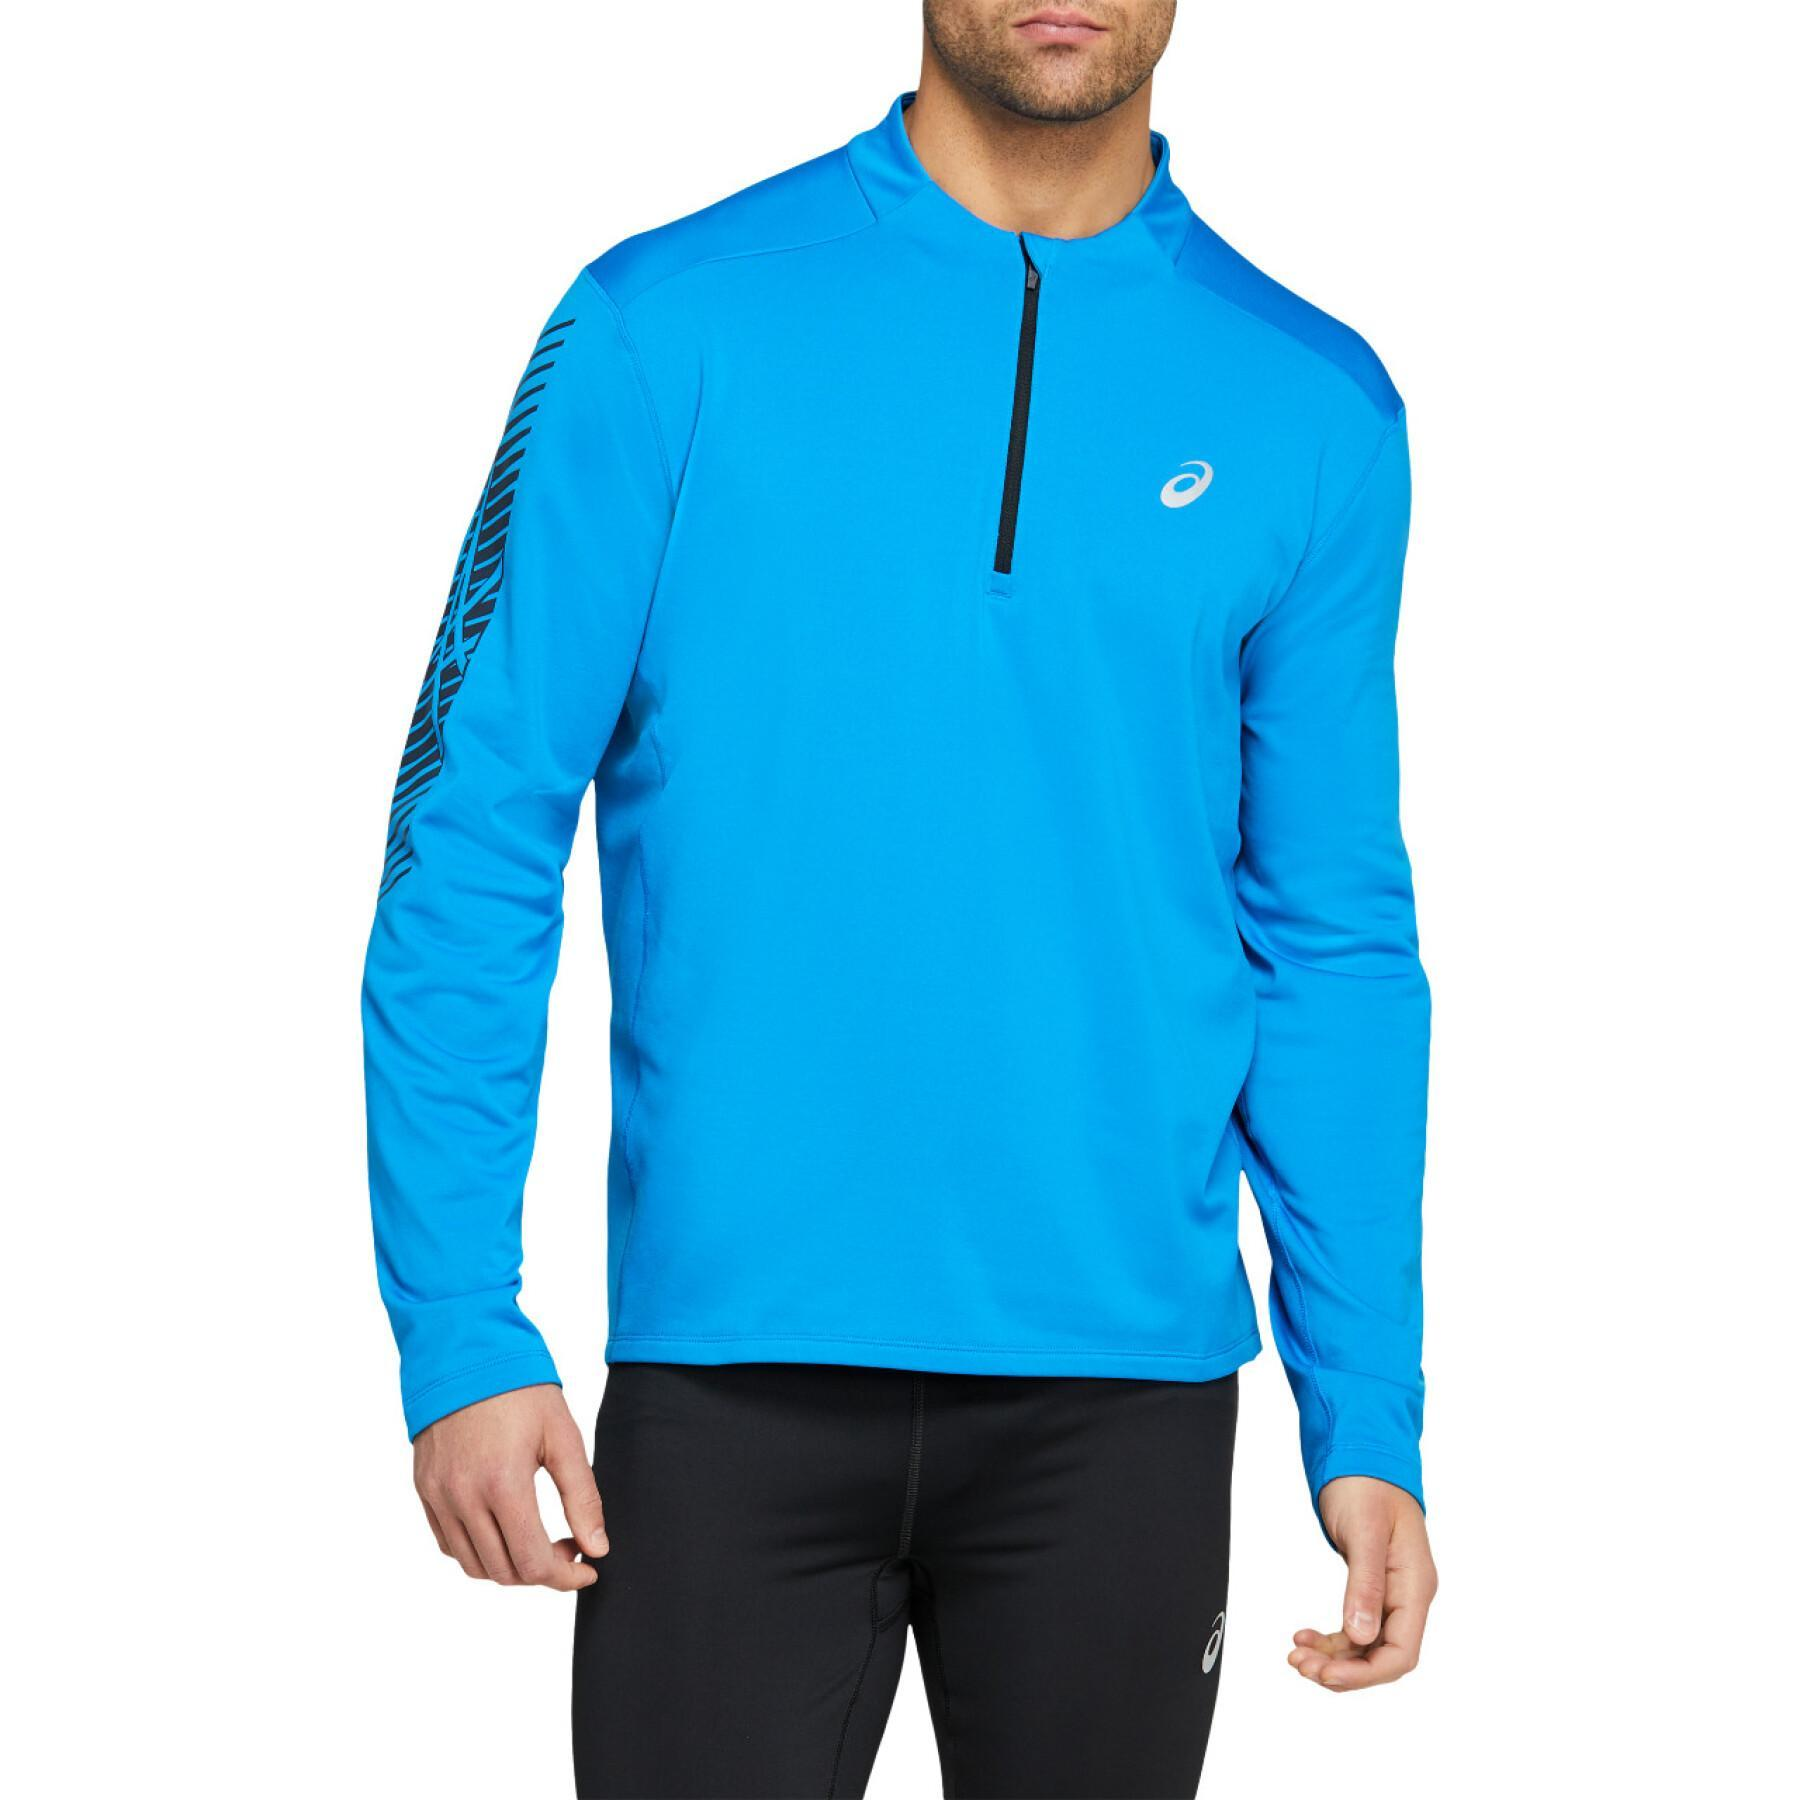 Training top long sleeves Asics Icon Winter lite-show